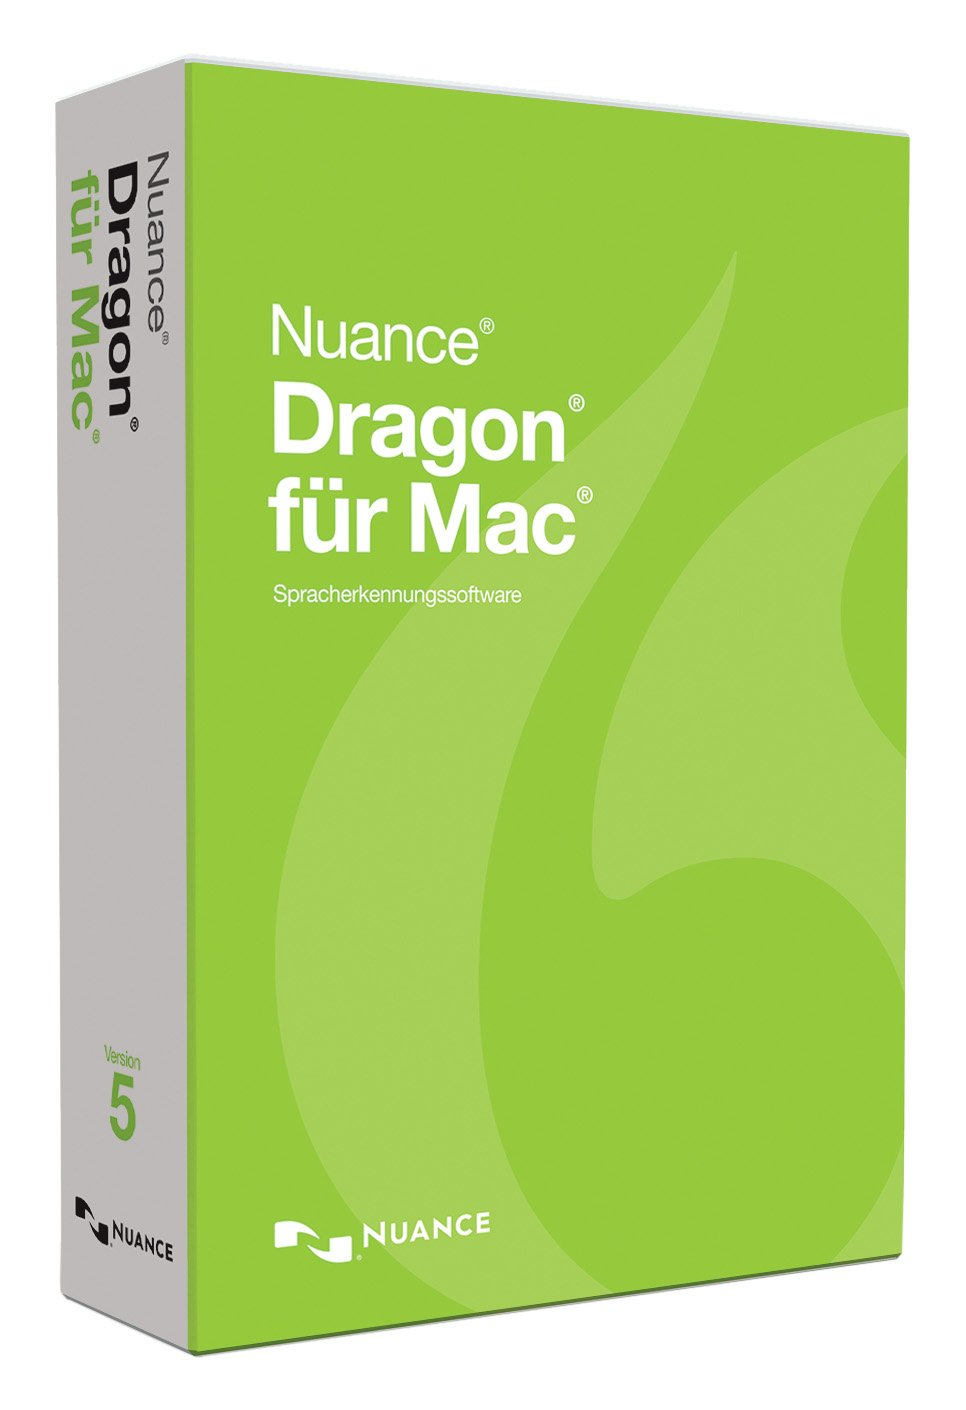 Dragon für Mac 5.0 Standard: Amazon.de: Software